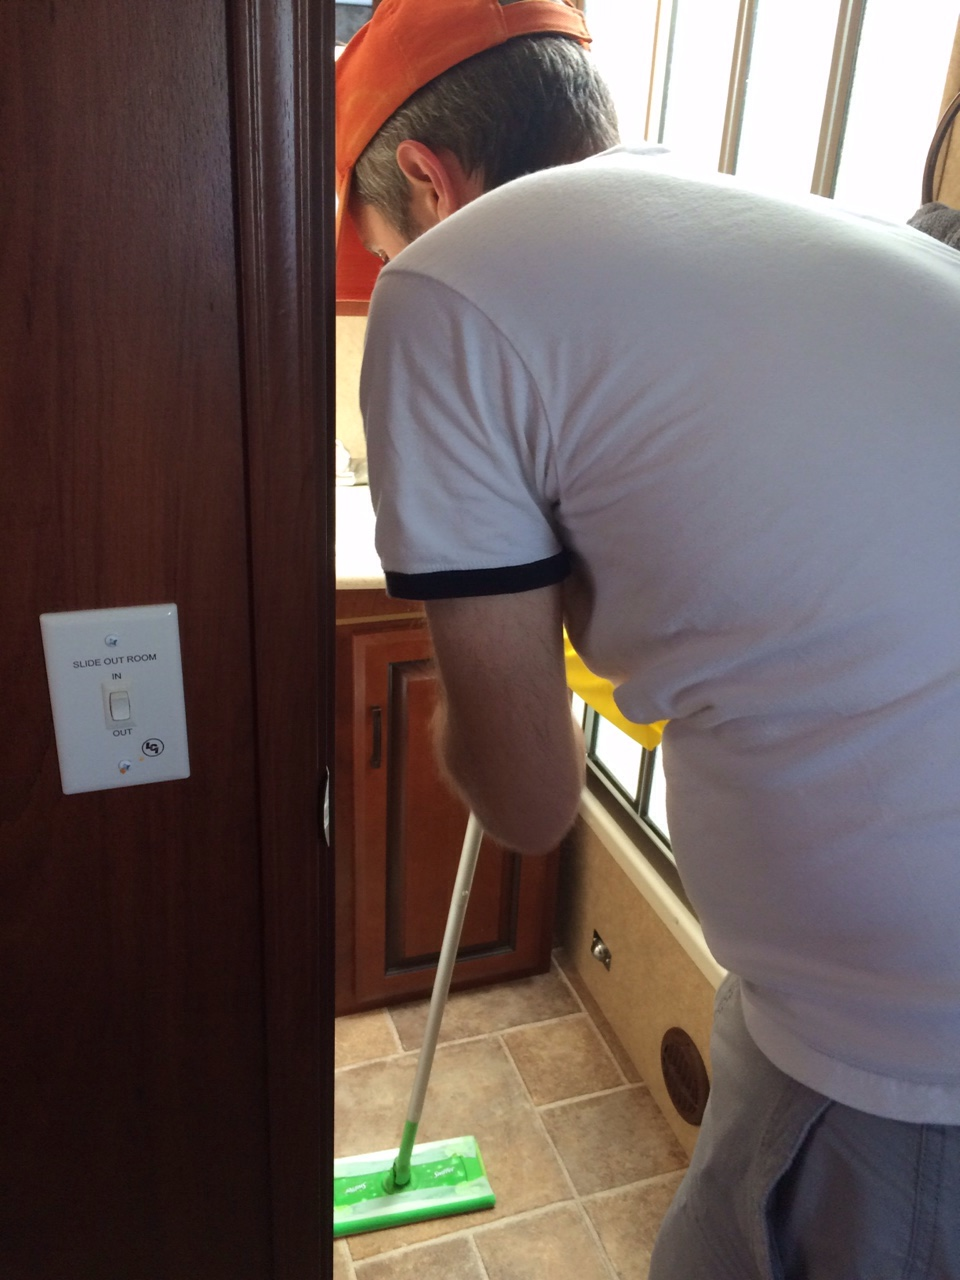 English hubby cleaning the RV bathroom